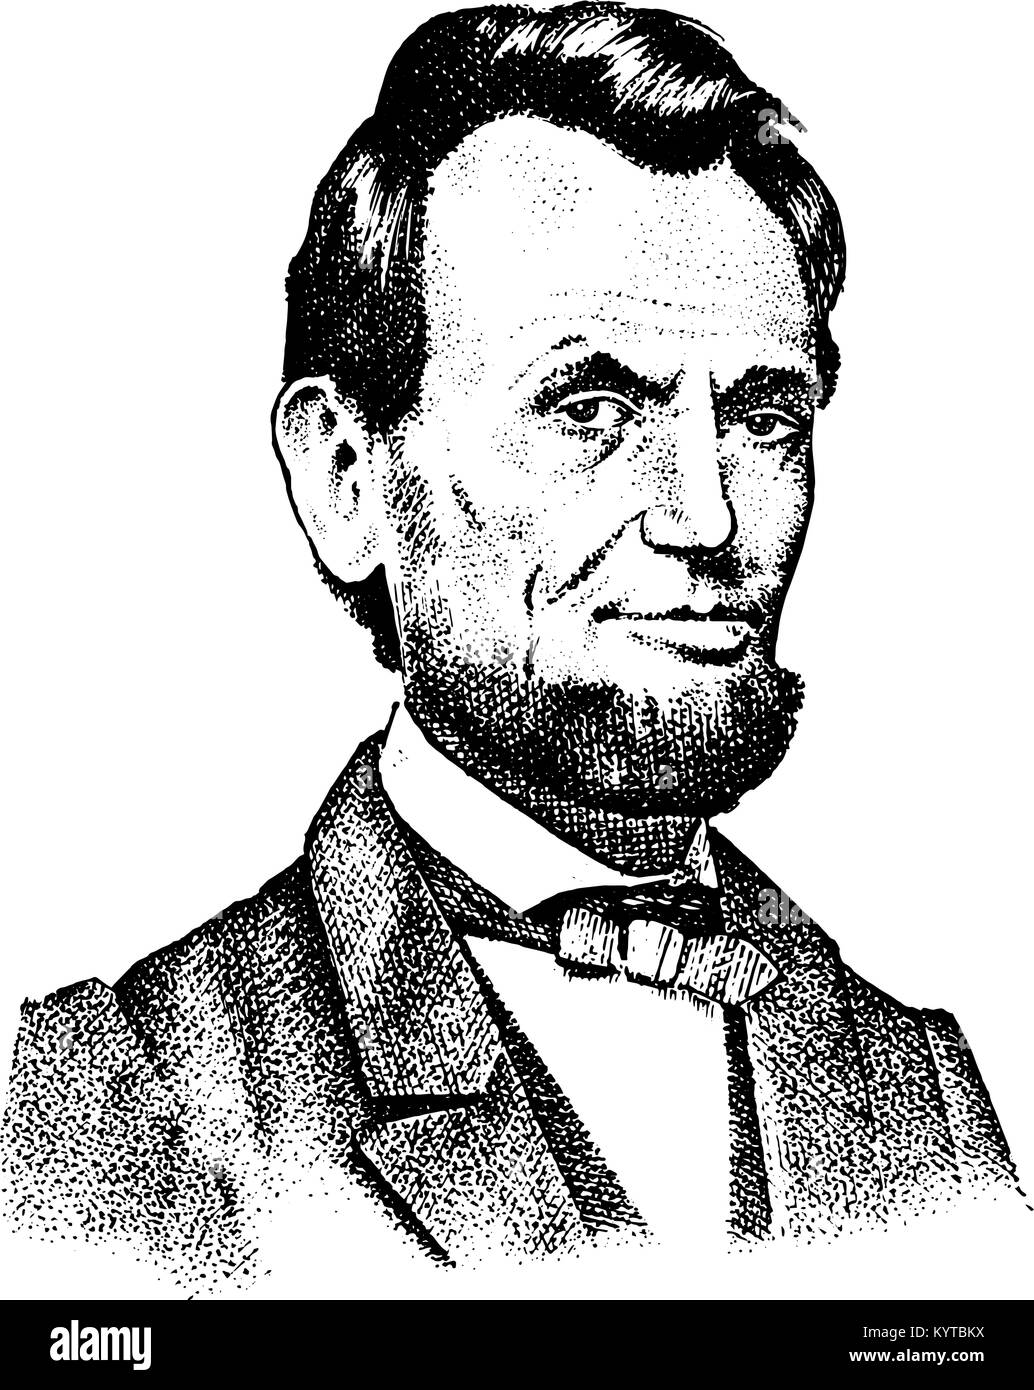 america at the hands of abraham lincoln Abraham lincoln, a self-taught lawyer, legislator and vocal opponent of slavery, was elected 16th president of the united states in november 1860, shortly before the outbreak of the civil war .